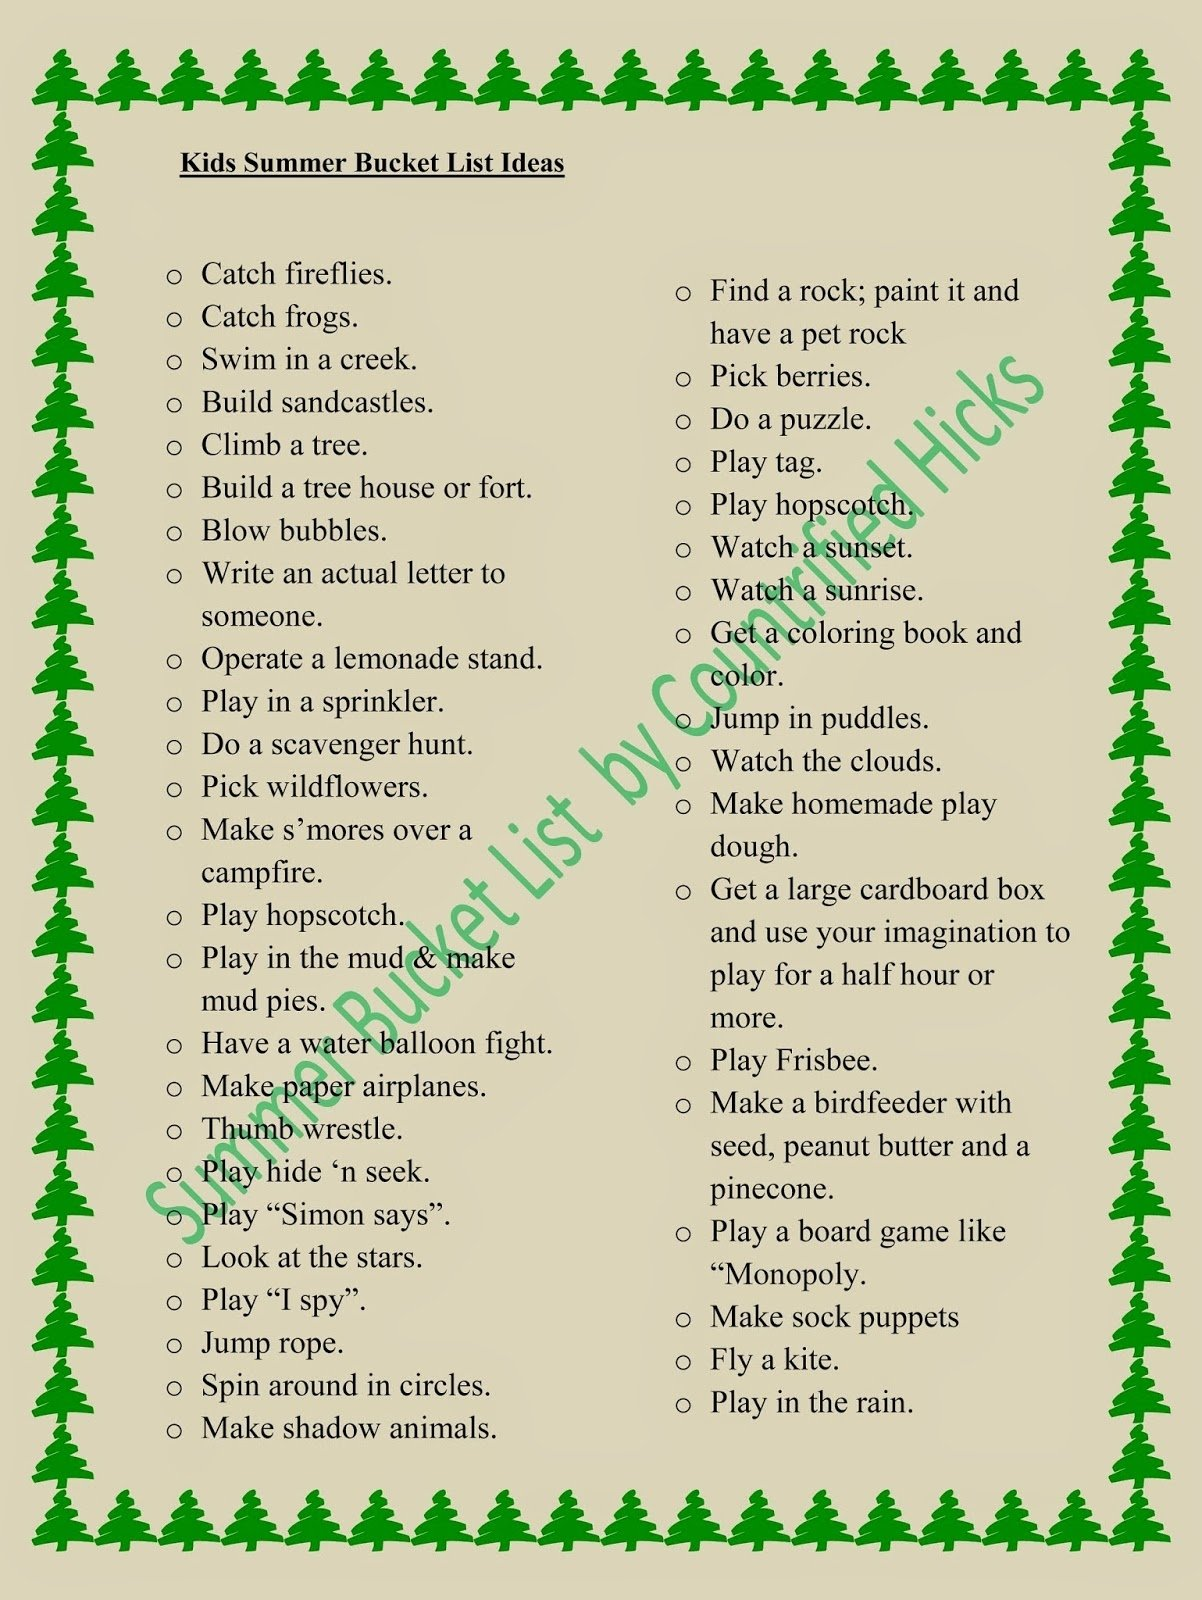 lovely bucket list ideas pictures for christians collections | photo